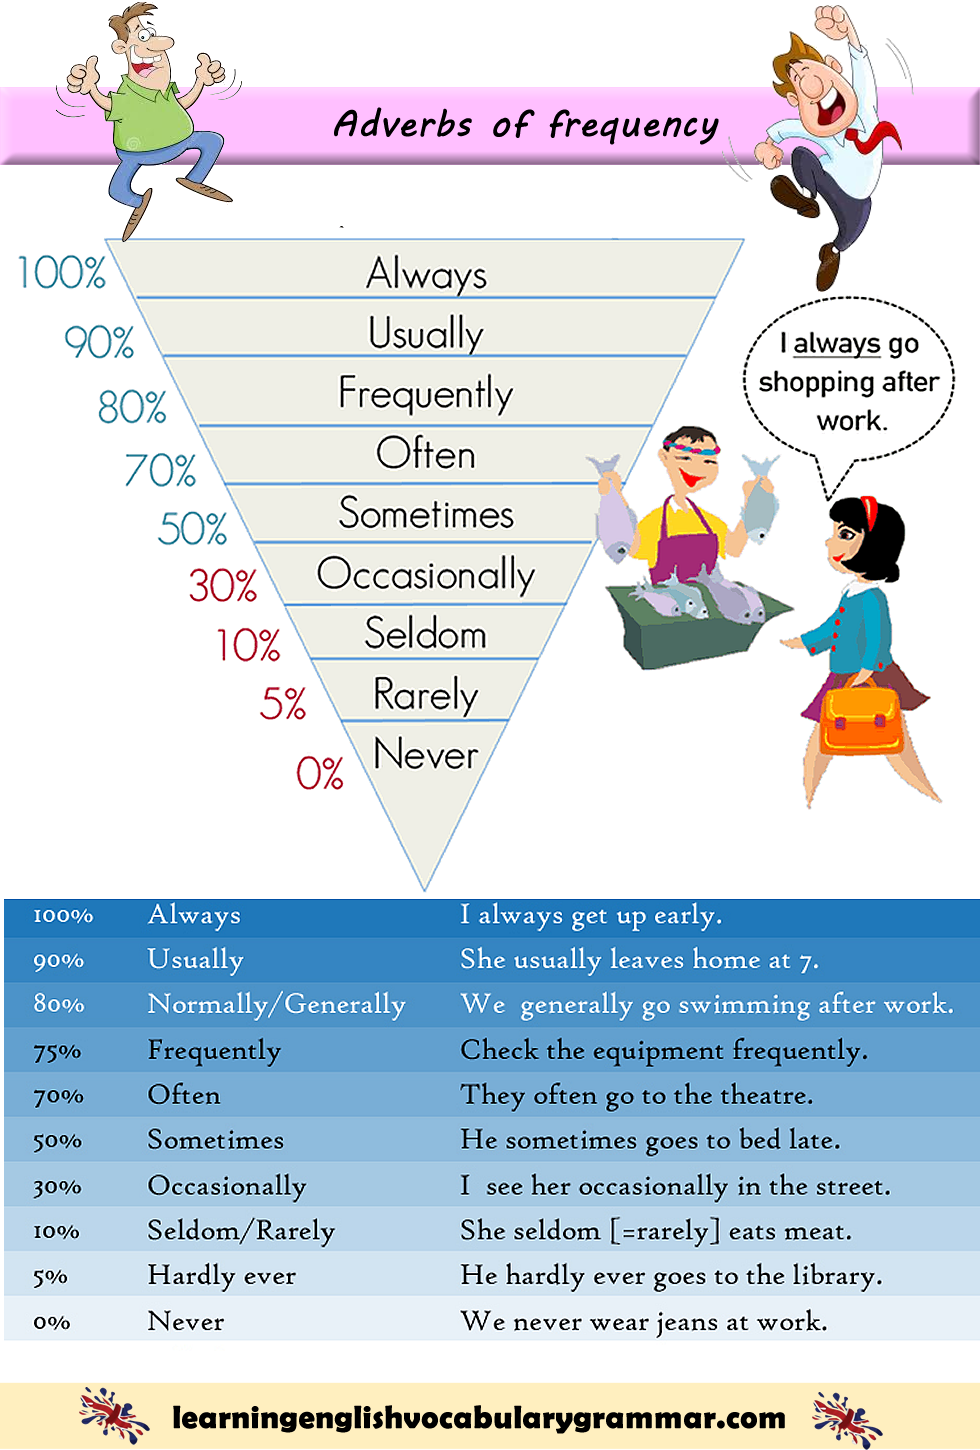 Adverbs Of Frequency List With Examples English Grammar Rules English Language Learning English Study [ 1450 x 980 Pixel ]